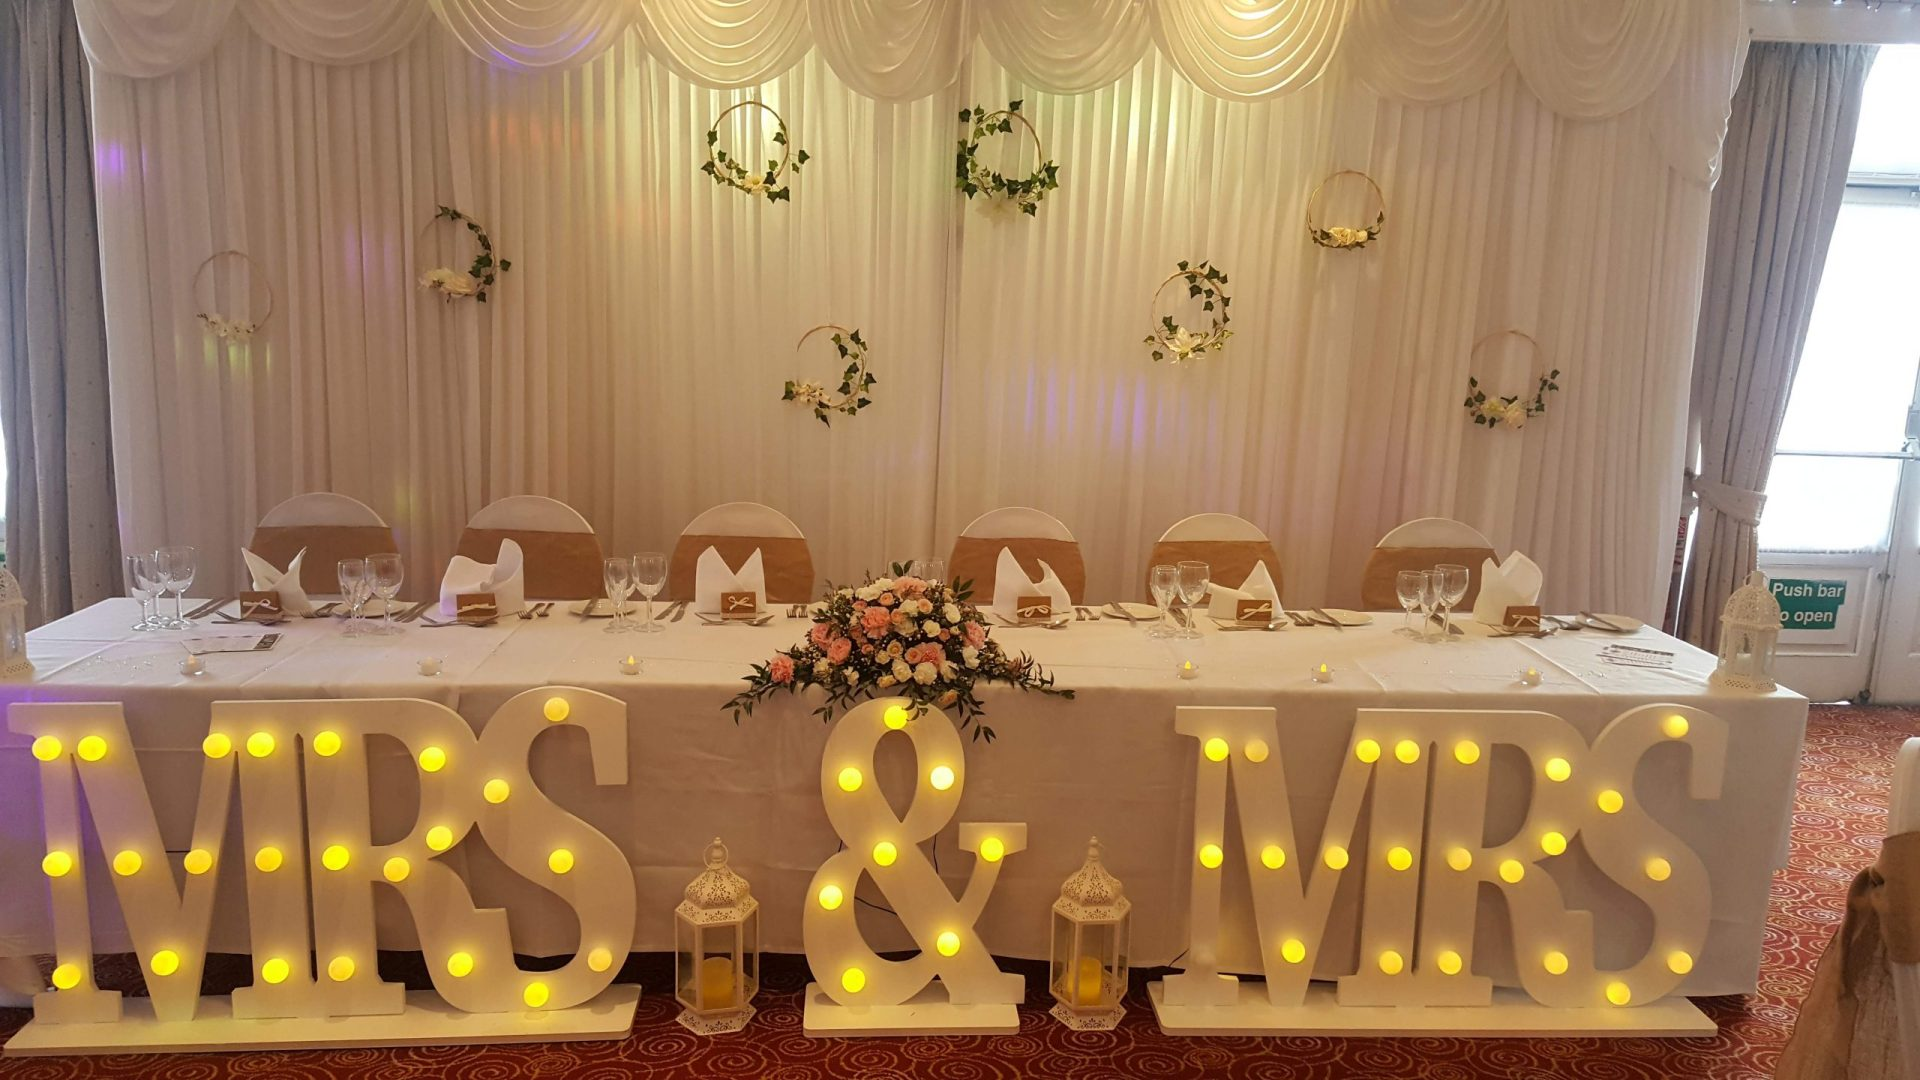 Long and Low, Bsckdrop, Mrs & mrs sign, Chairs with hessian sashes